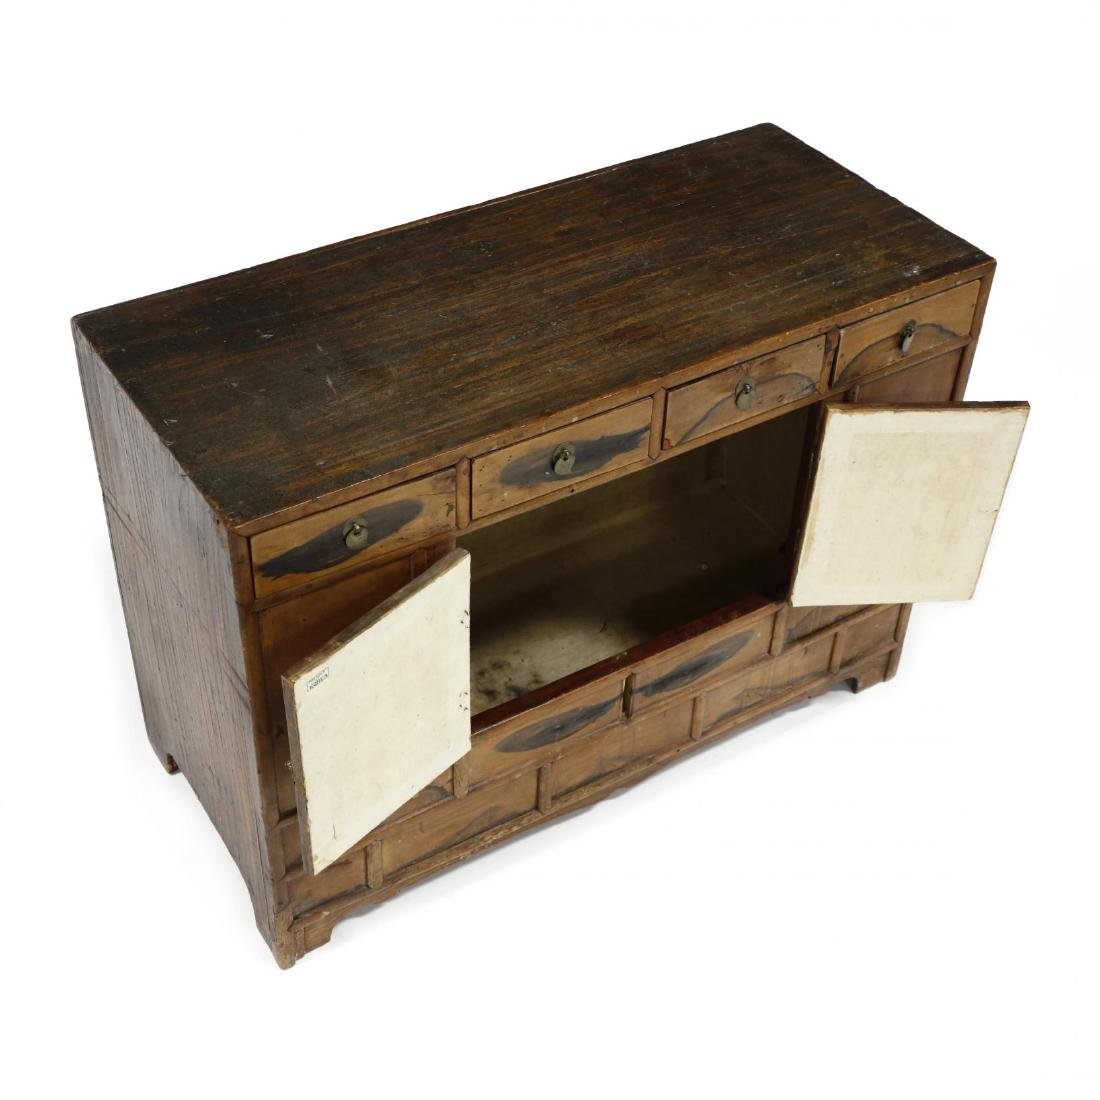 Antique Chinese Diminutive Cabinet - 3